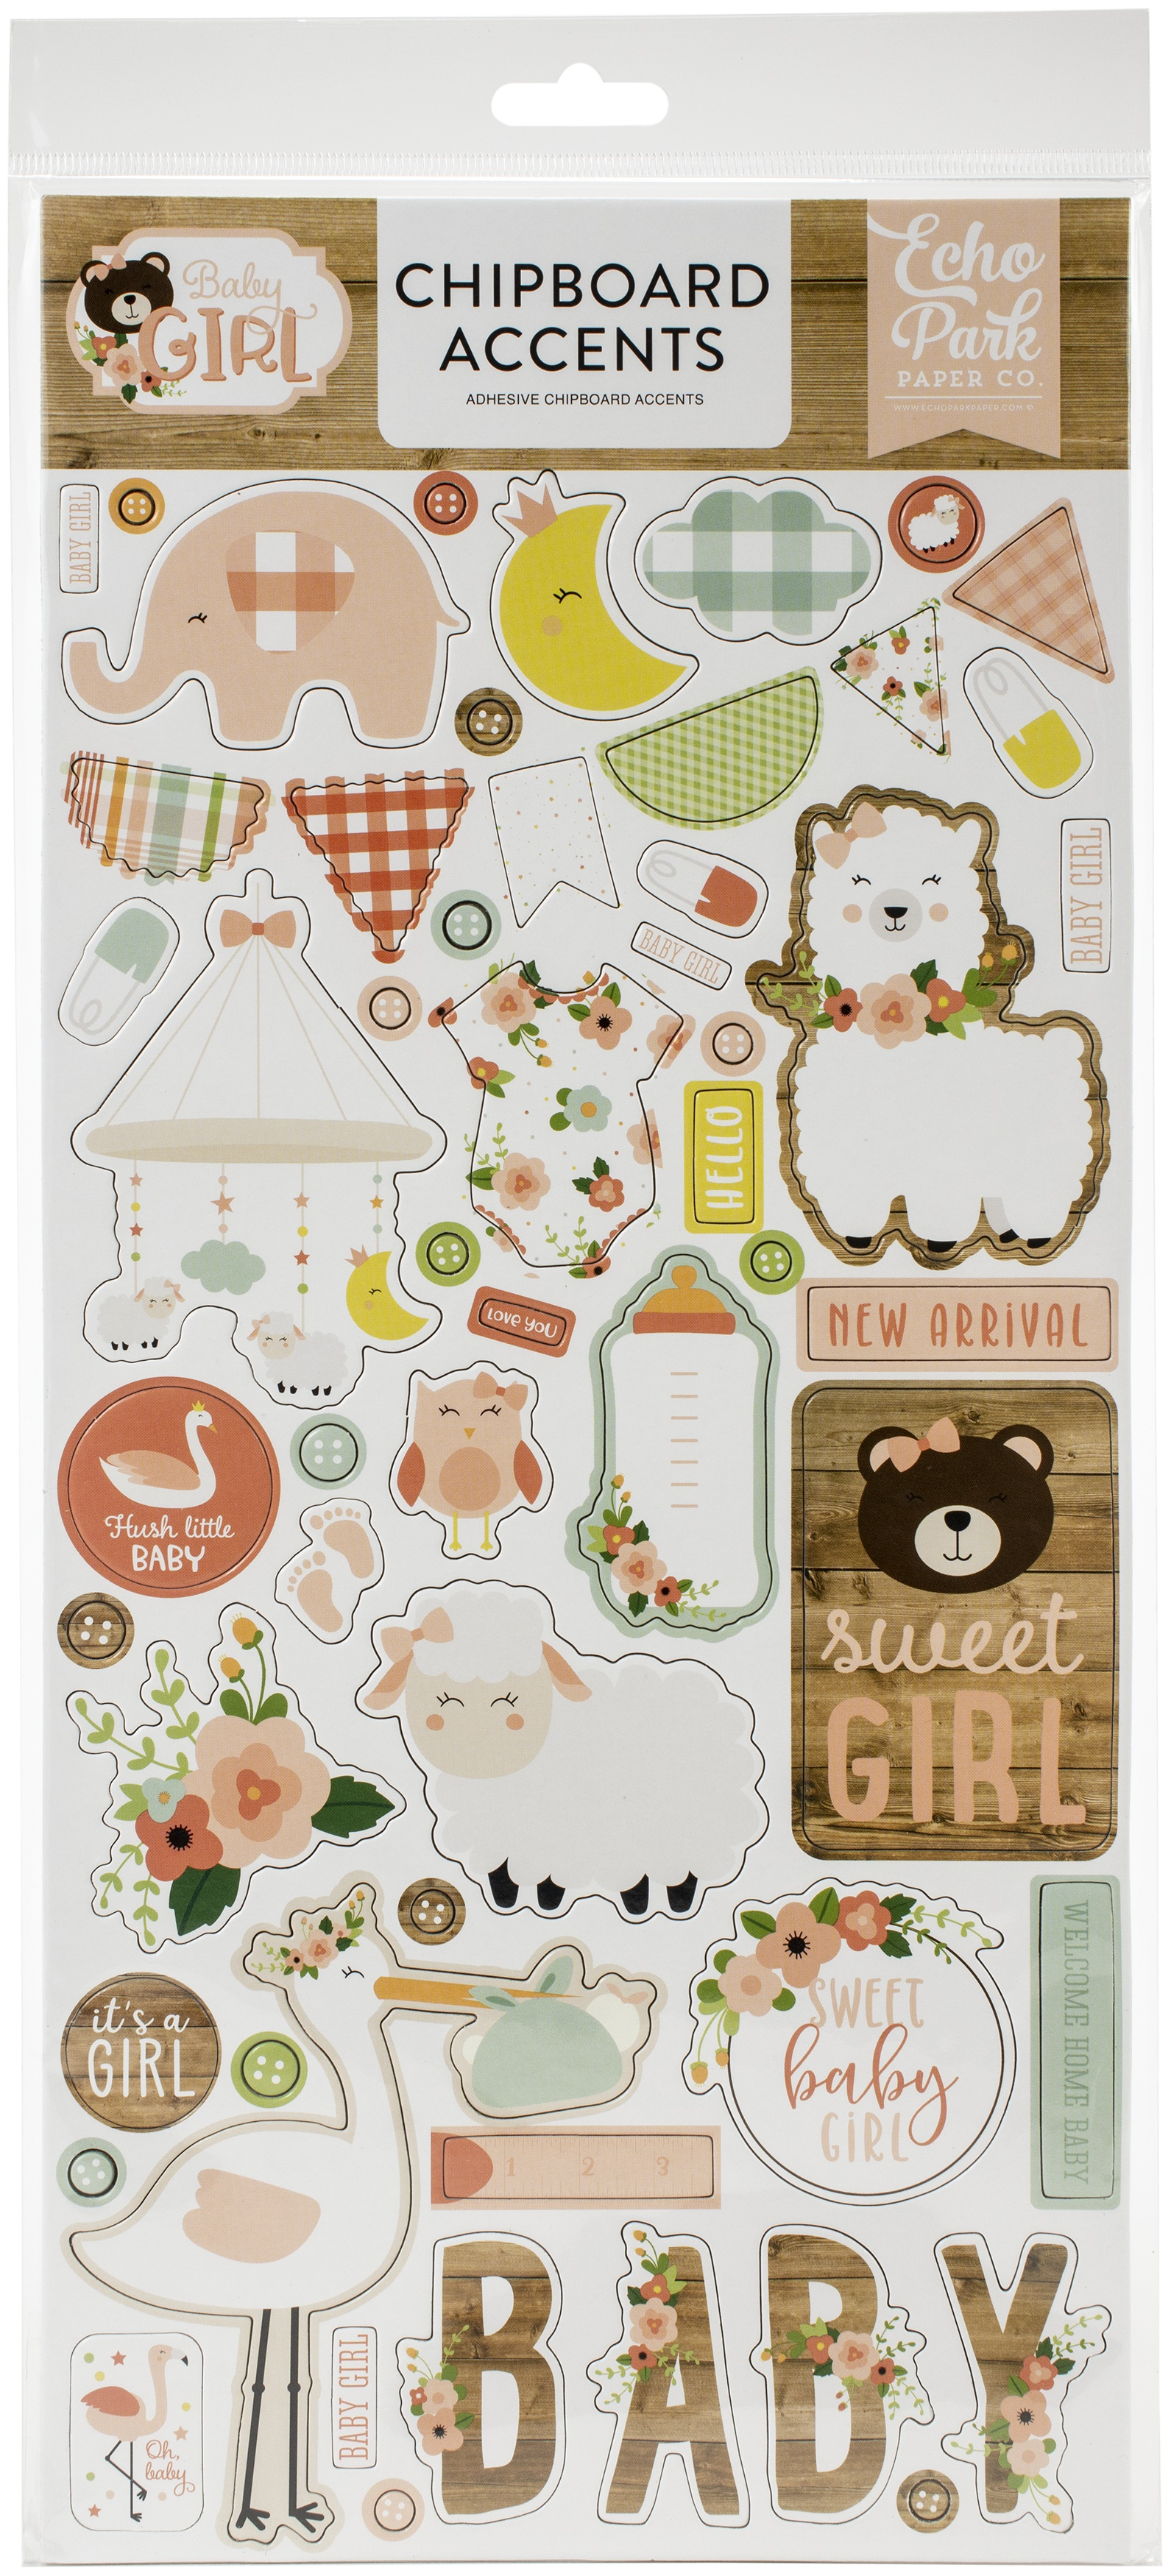 Baby Girl - Chipboard Accents